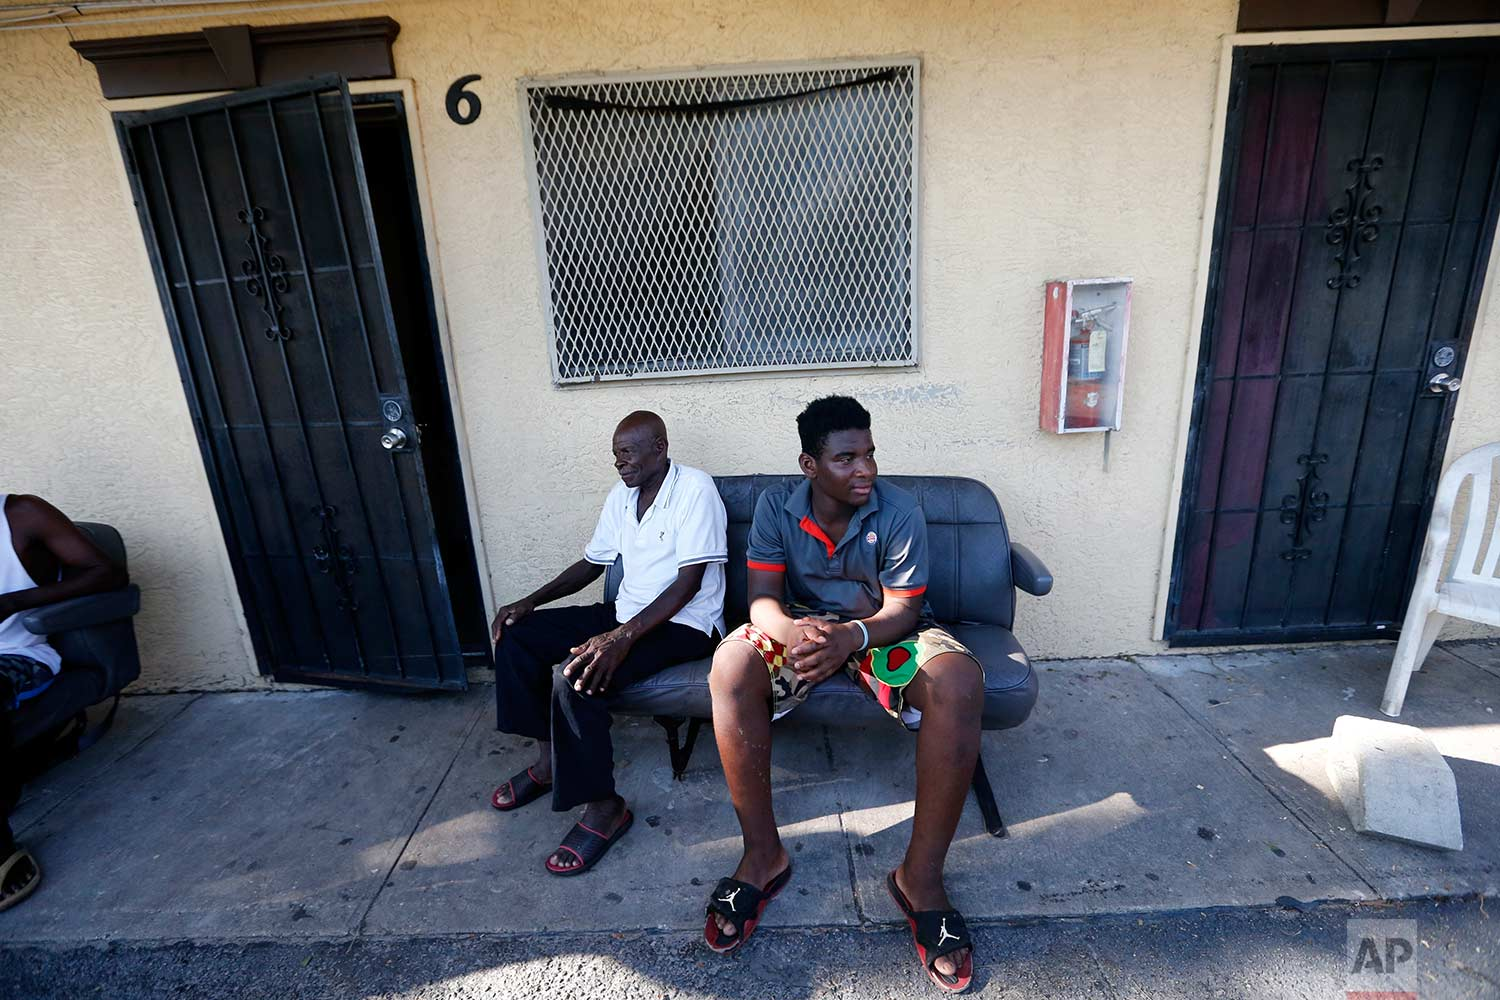 In this Sept. 12, 2017 photo, Woodchy Darius, right, sits outside the small cinderblock apartment he lives in, in the aftermath of Hurricane Irma, in Immokalee, Fla. A Haitian immigrant, he is trying to decide to go to school next week, or work in the fields to make up for lost income due to the storm. (AP Photo/Gerald Herbert)